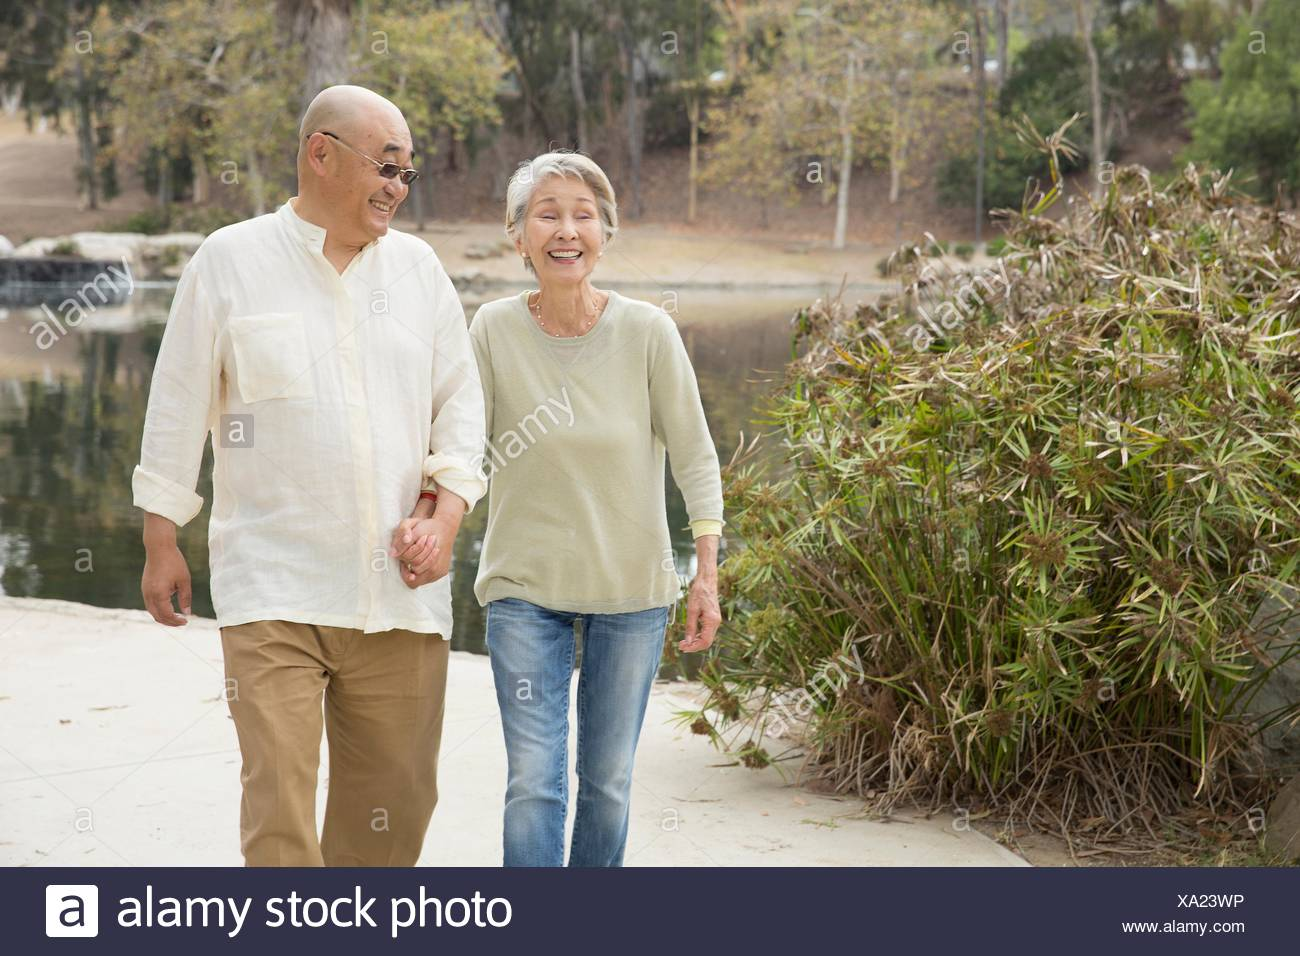 Couple le long chemin, tenant les mains, rire Photo Stock